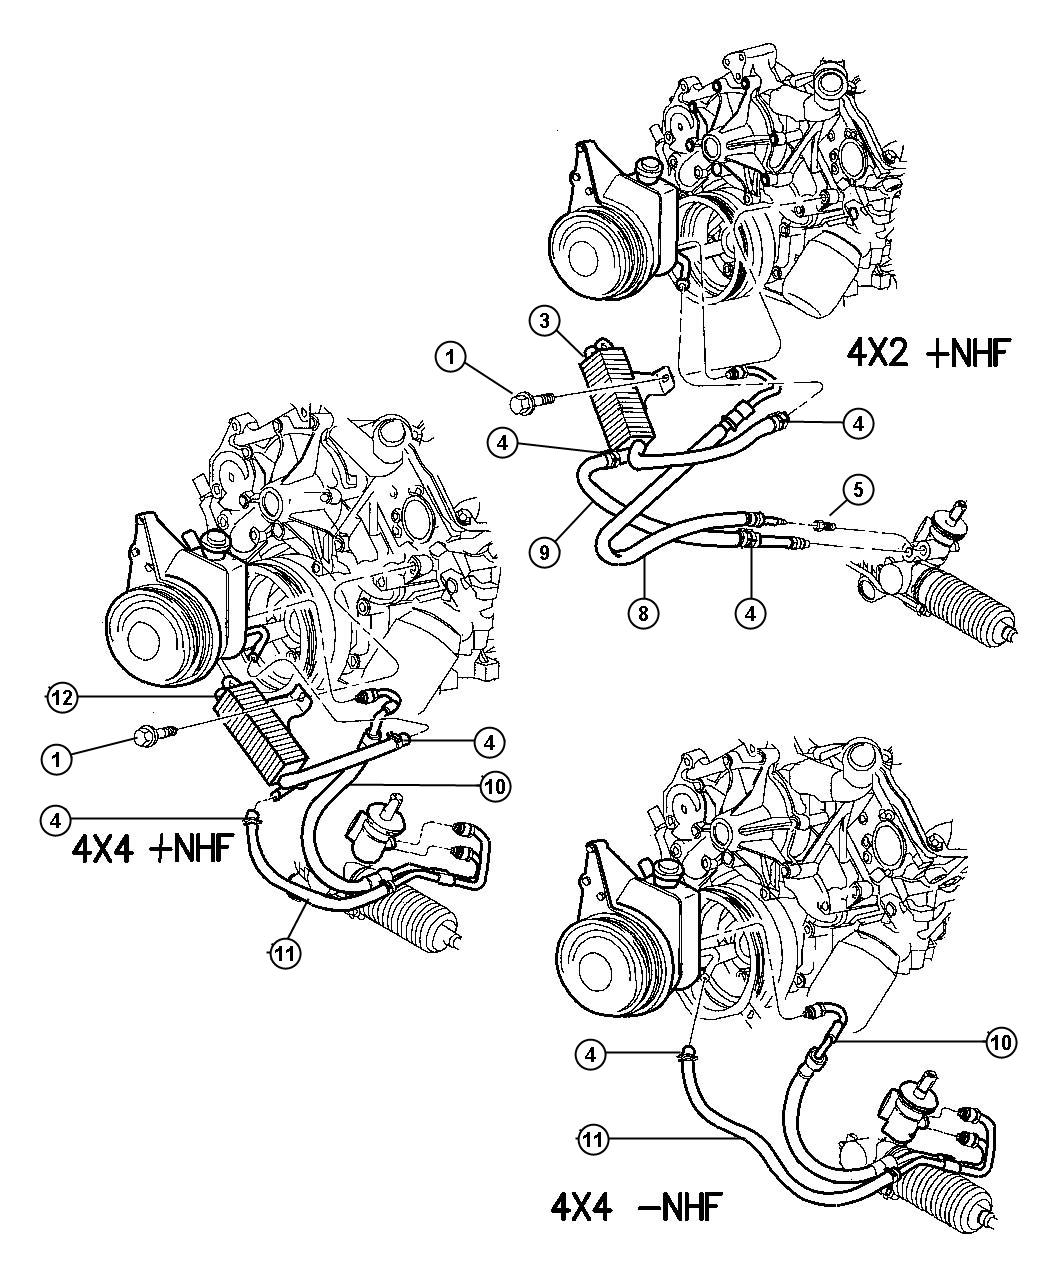 99 dodge 5 9 liter engine diagram  99  free engine image